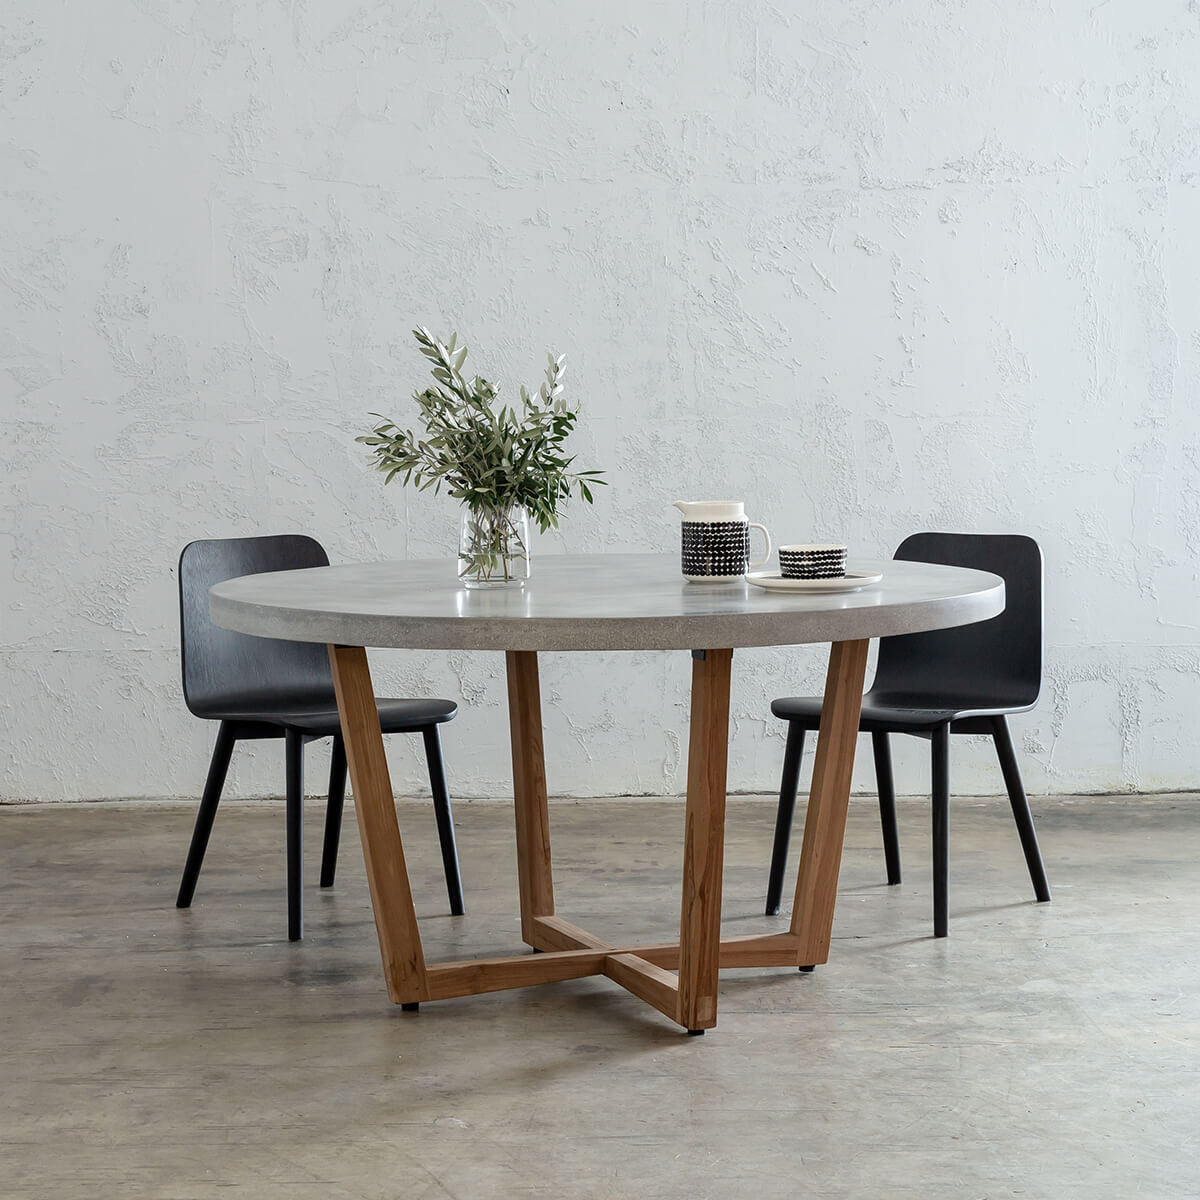 ARIA CONCRETE GRANITE ROUND DINING TABLE   |  ZINC ASH WHITE  |  OUTDOOR DINING FURNITURE